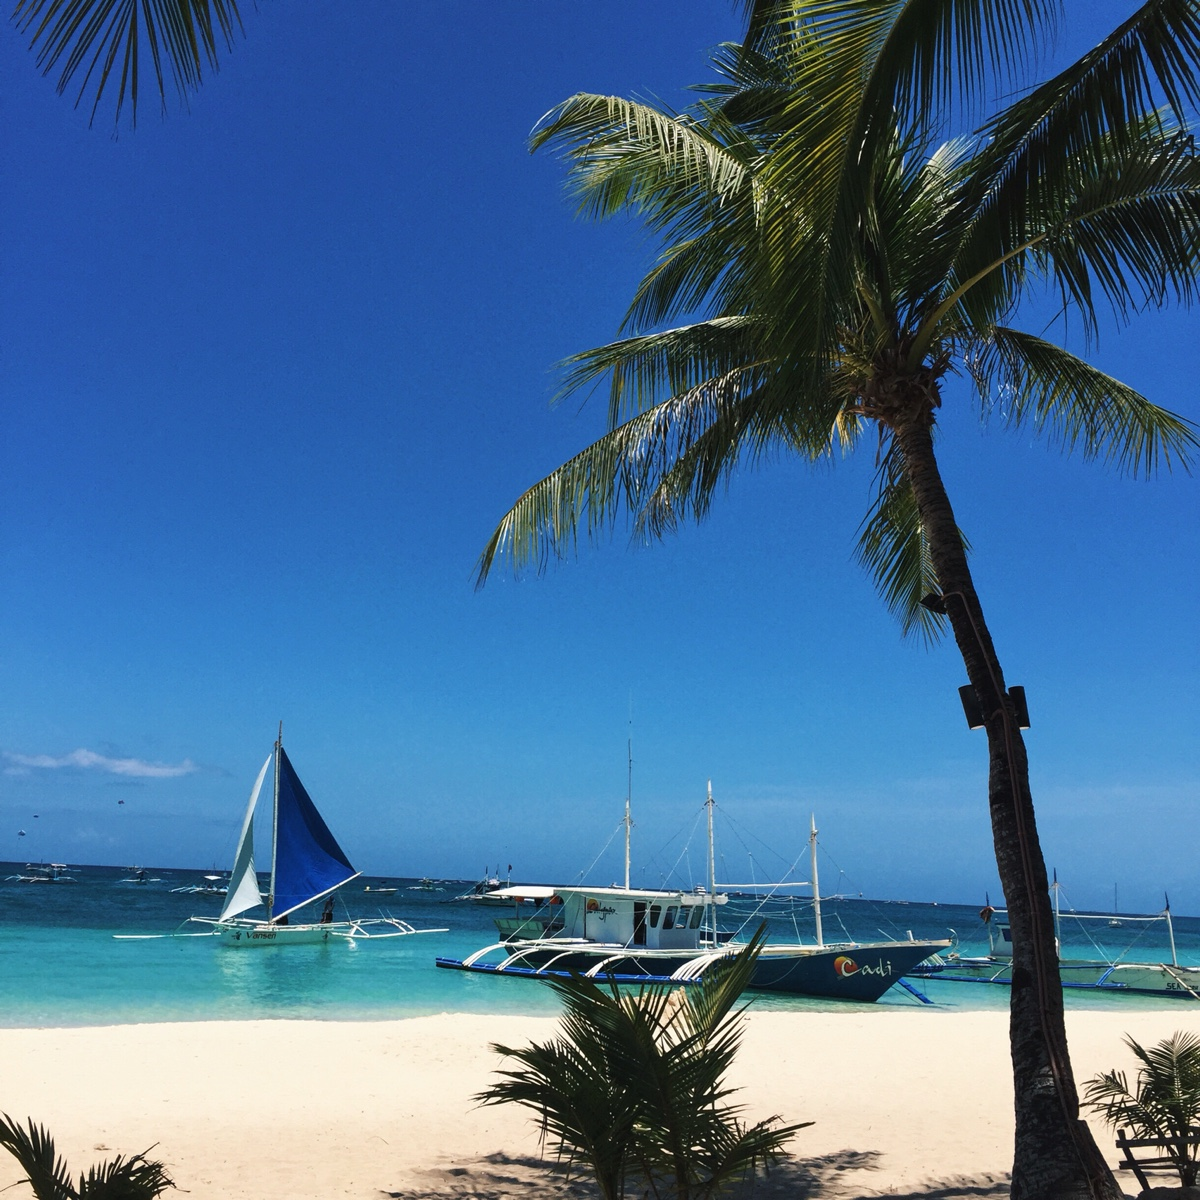 Boracay Beach: An Unforgettable Summer In Boracay